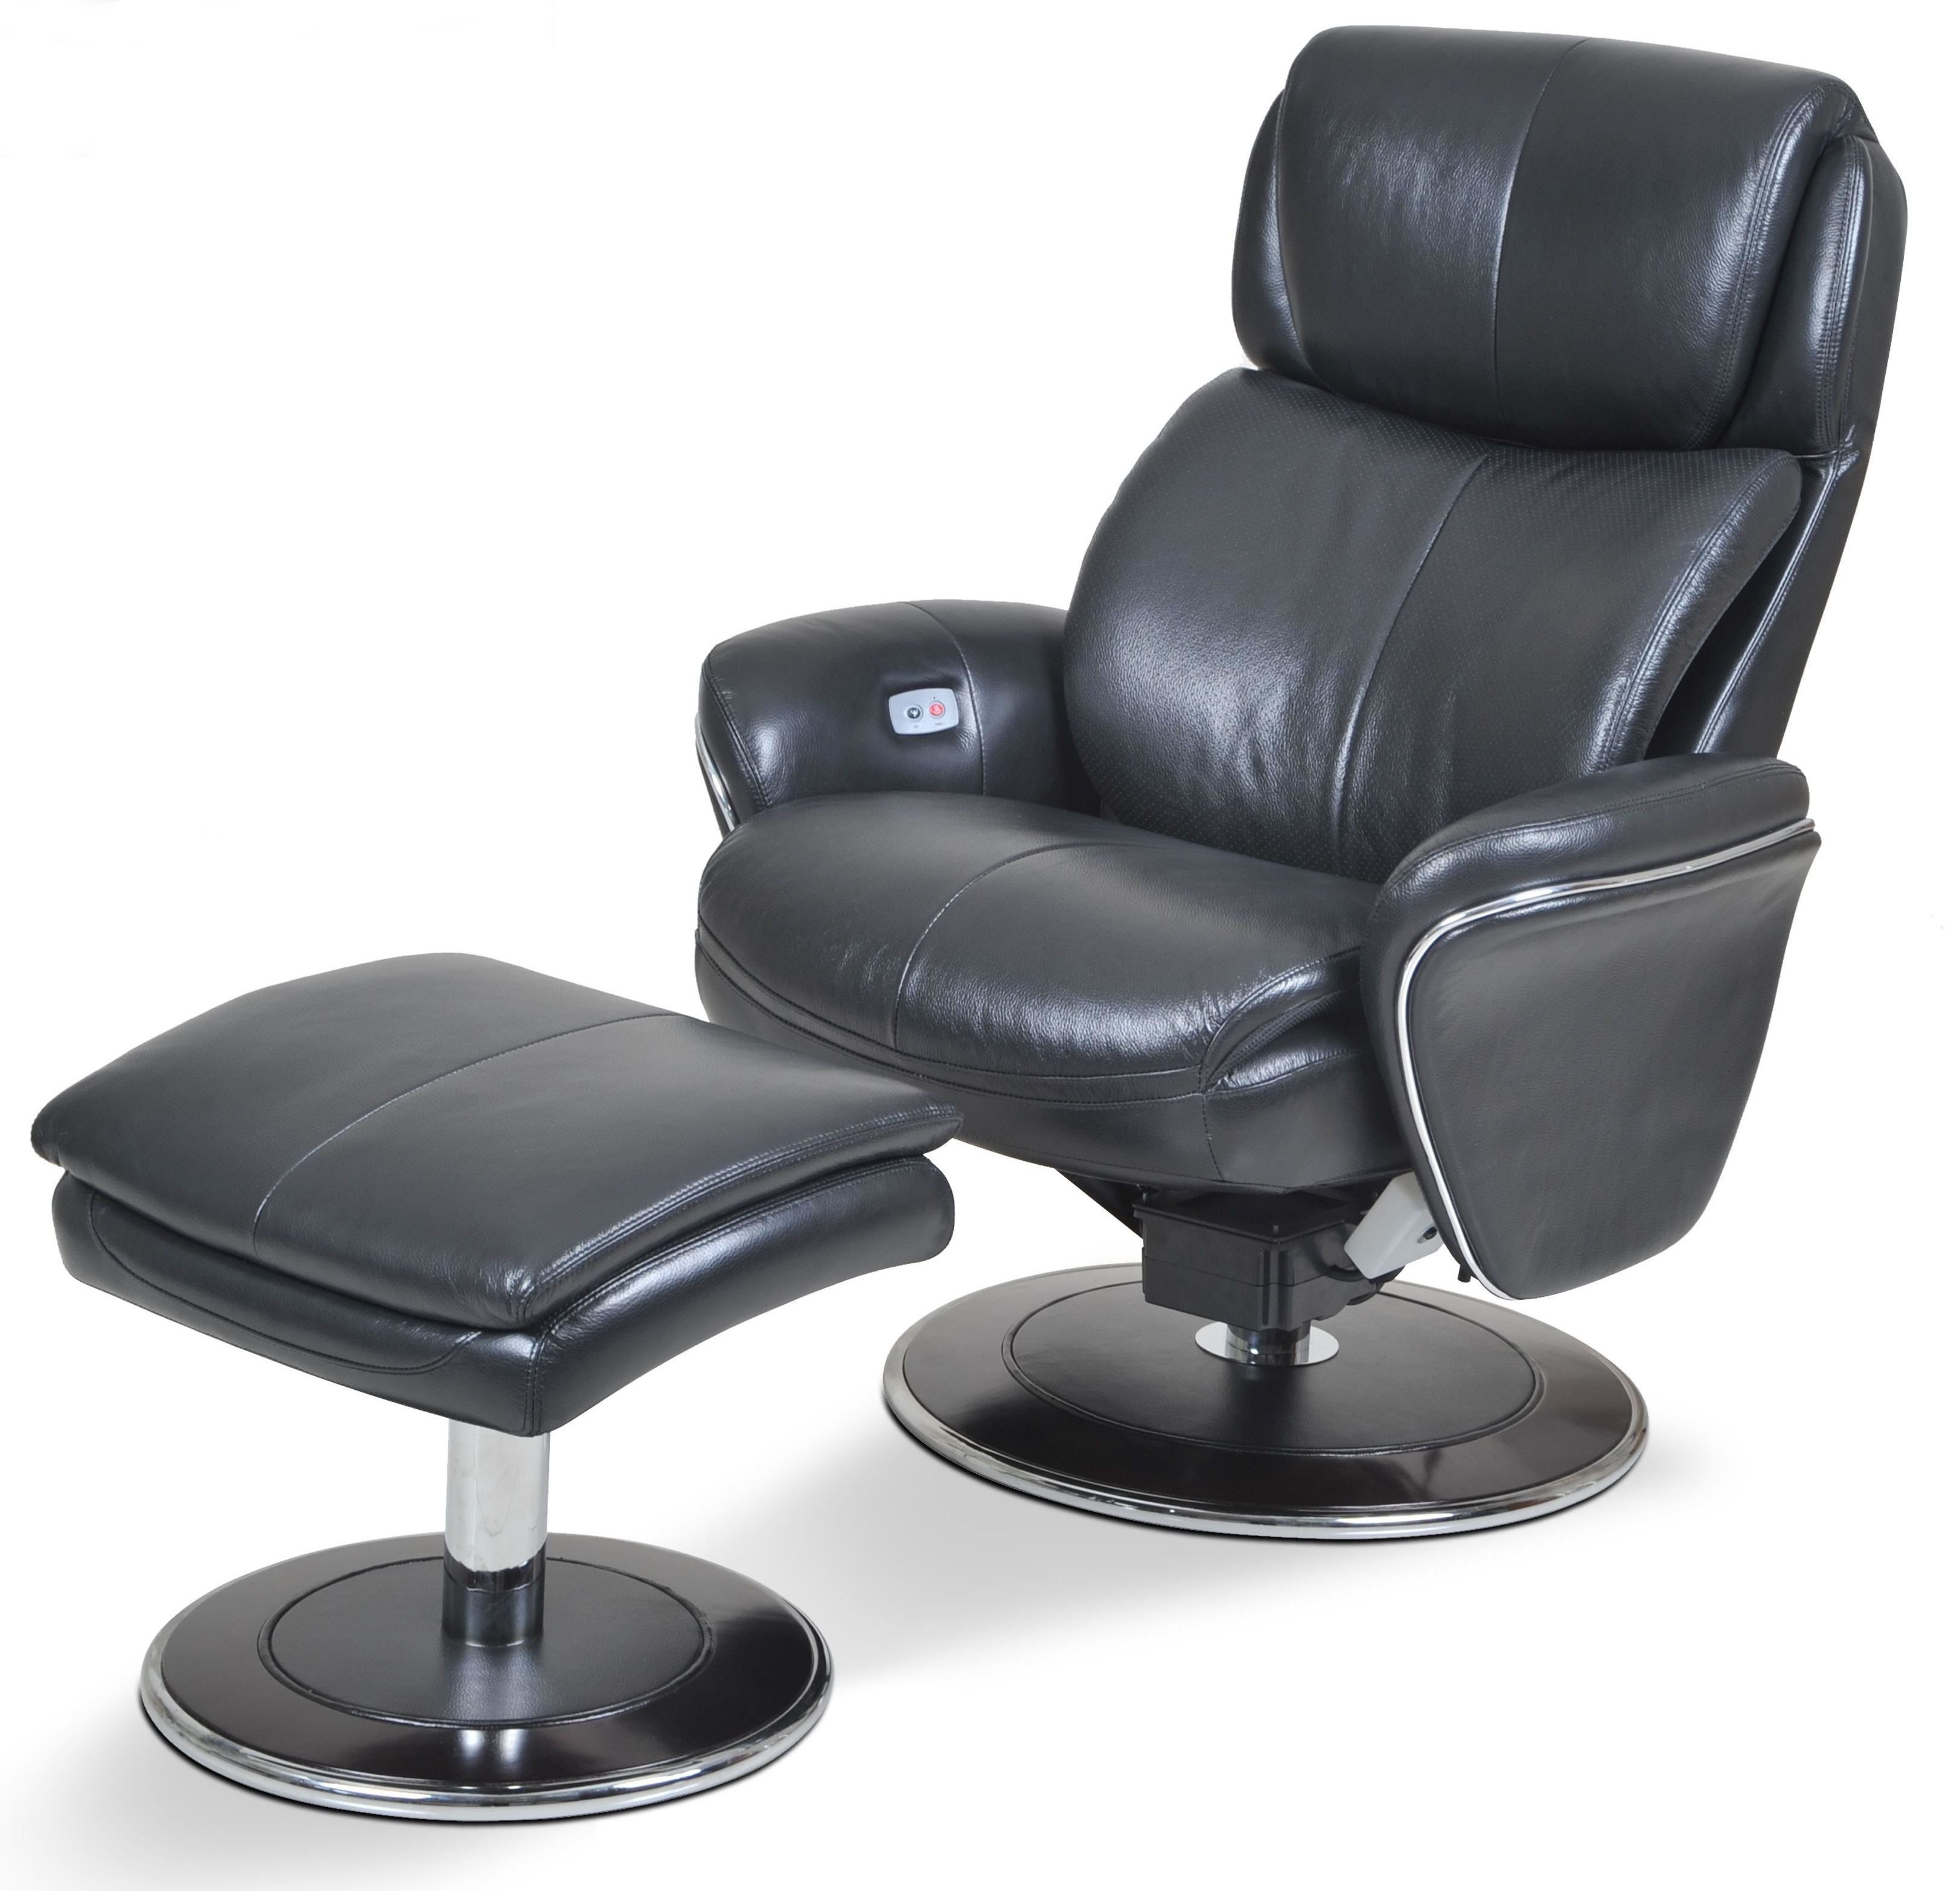 ergonomic chair and ottoman covers for hire chatsworth leather slate from cozzia ac520